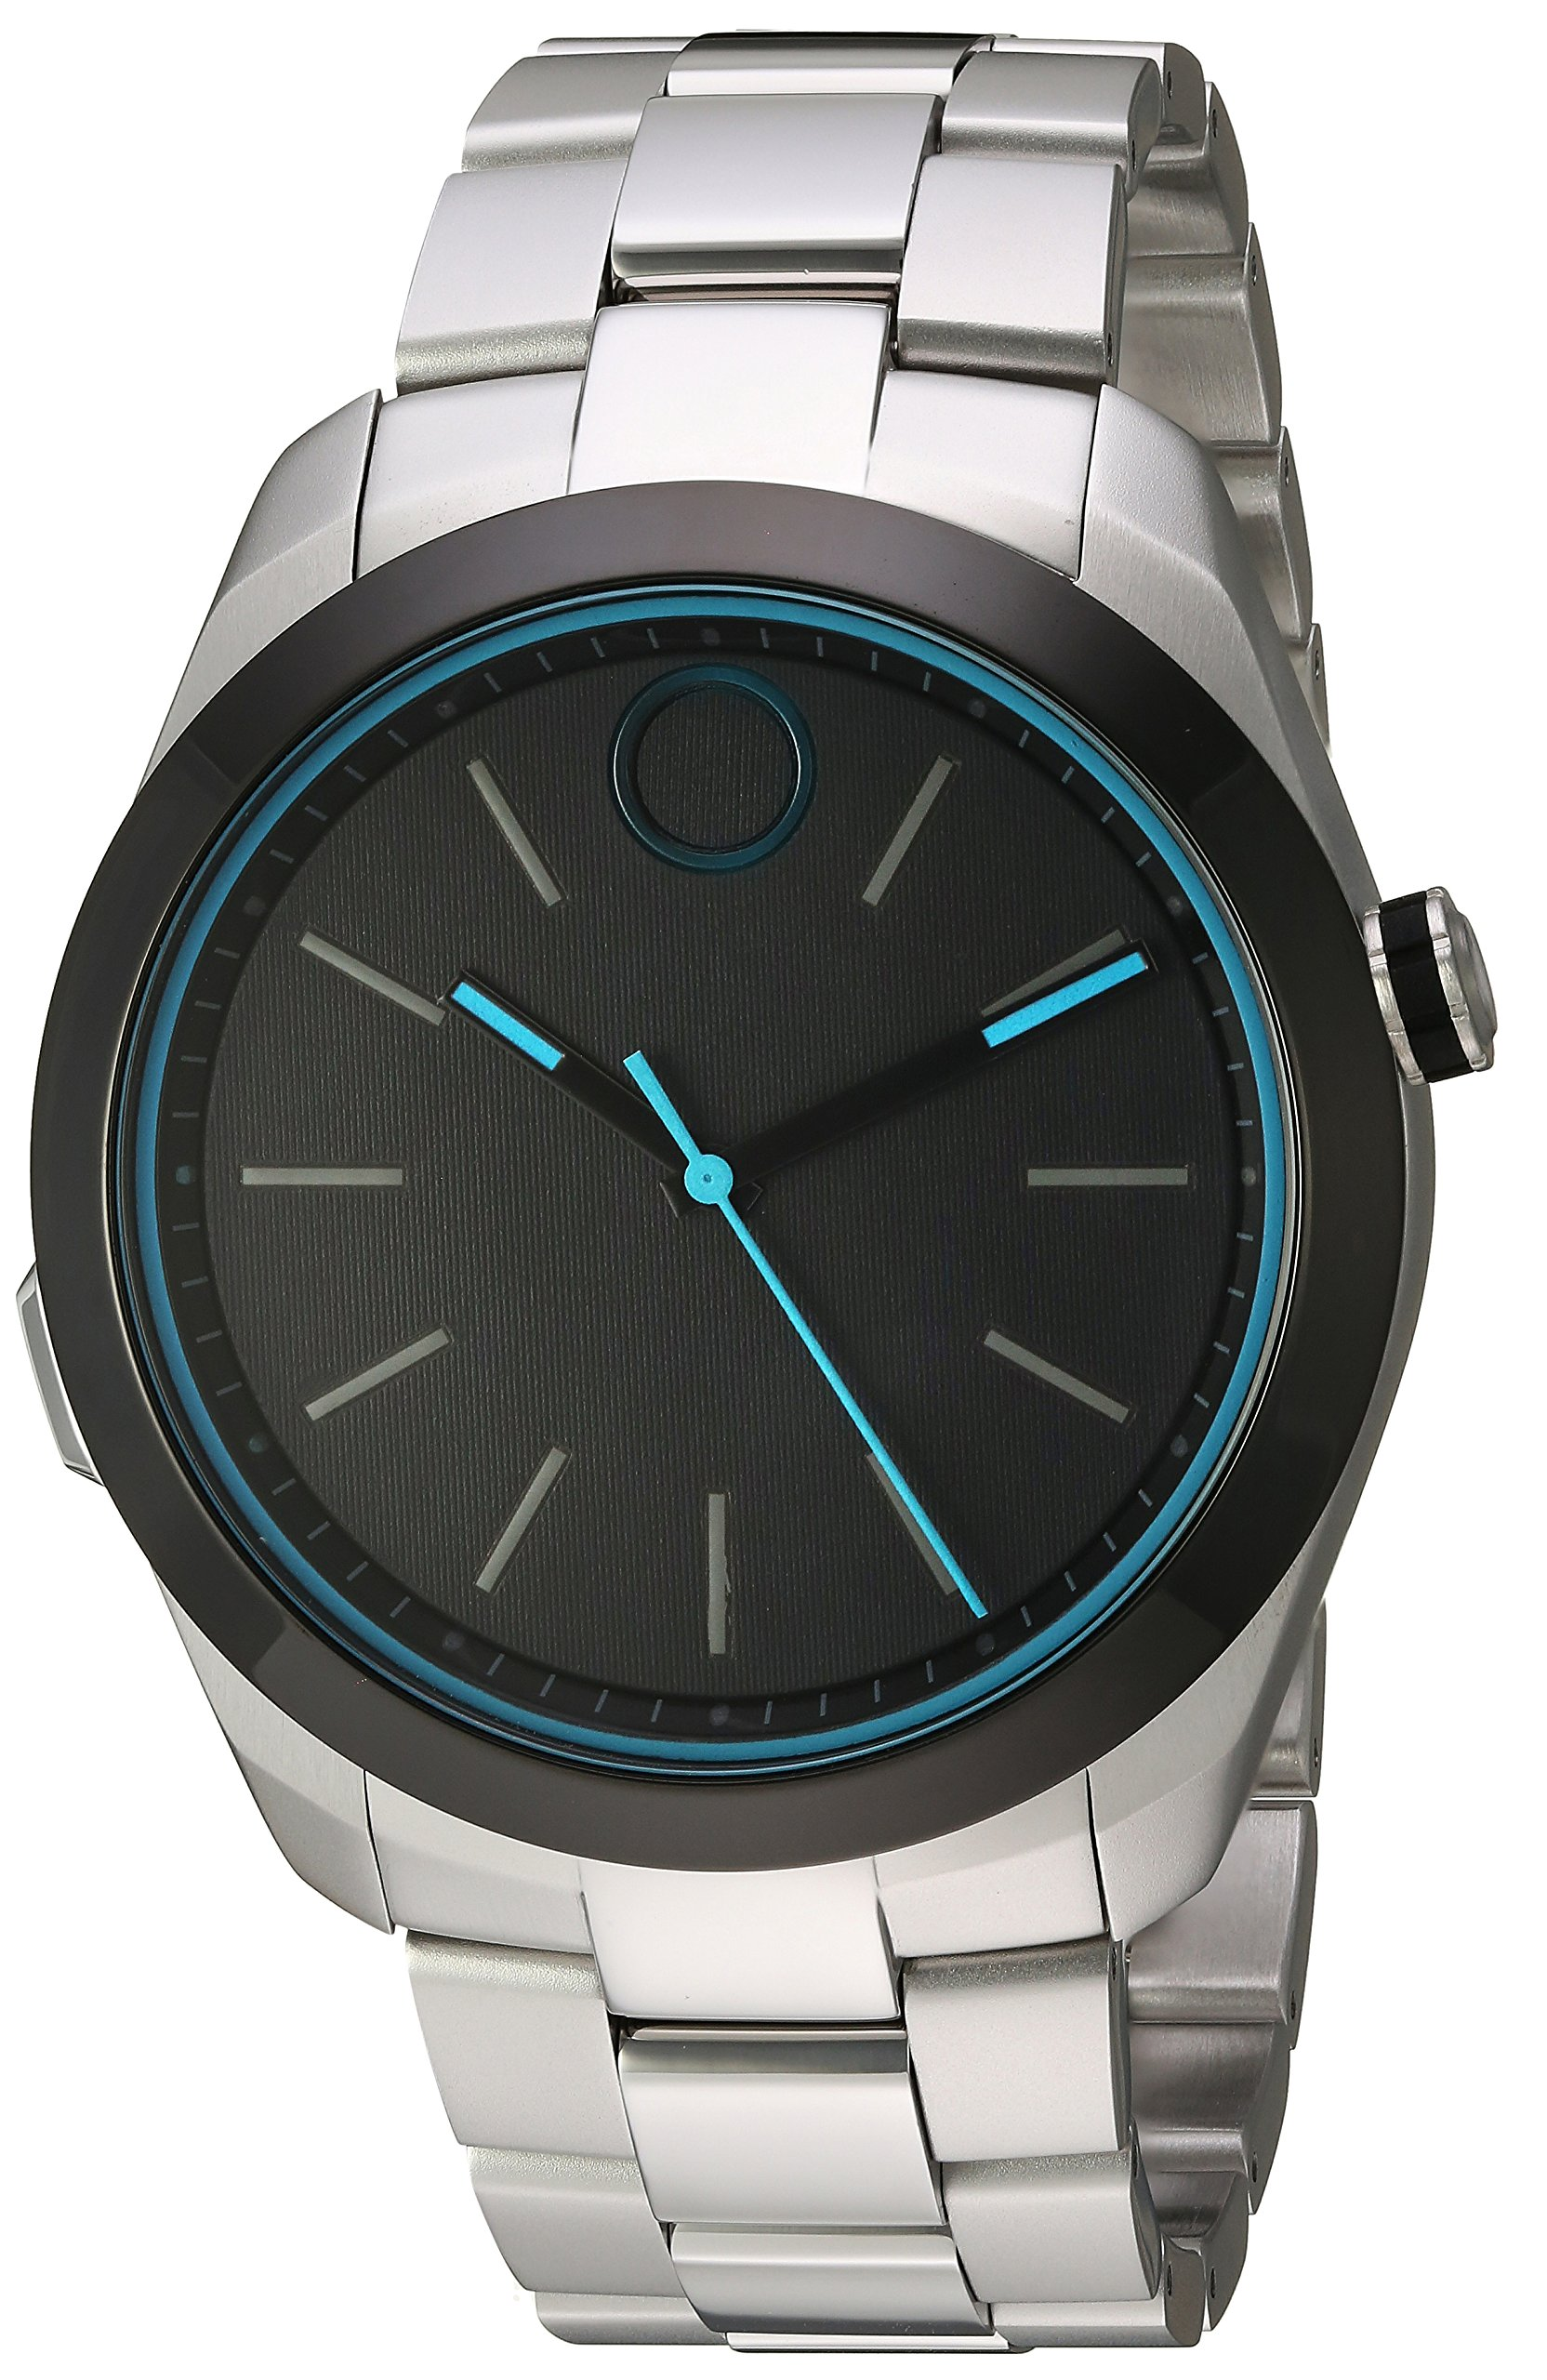 Movado Swiss Quartz Stainless-Steel-Plated Watch, Color: Silver-Toned (Model: 3660003)